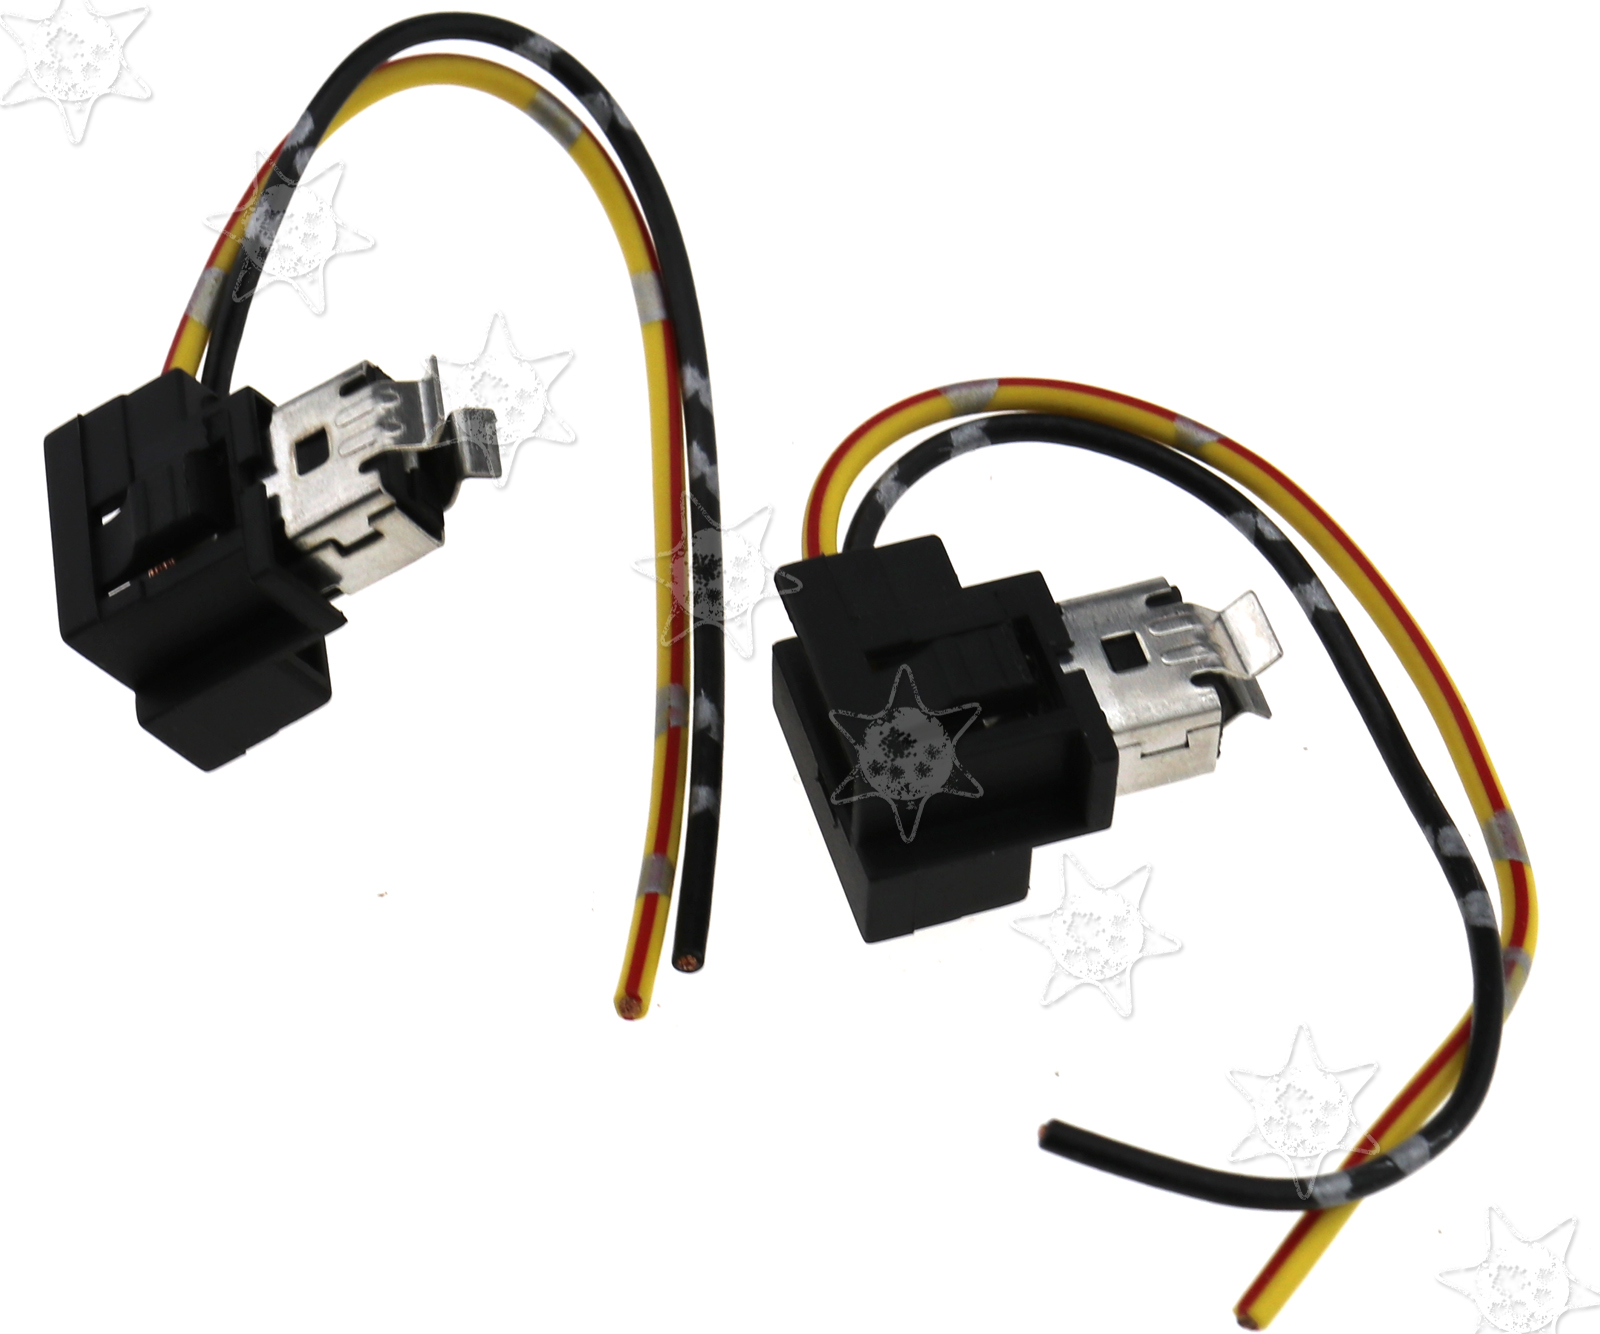 Stupendous 12V H1 Head Fog Lamp Light Bulb Socket Holder Wiring Connector Plug Wiring 101 Taclepimsautoservicenl